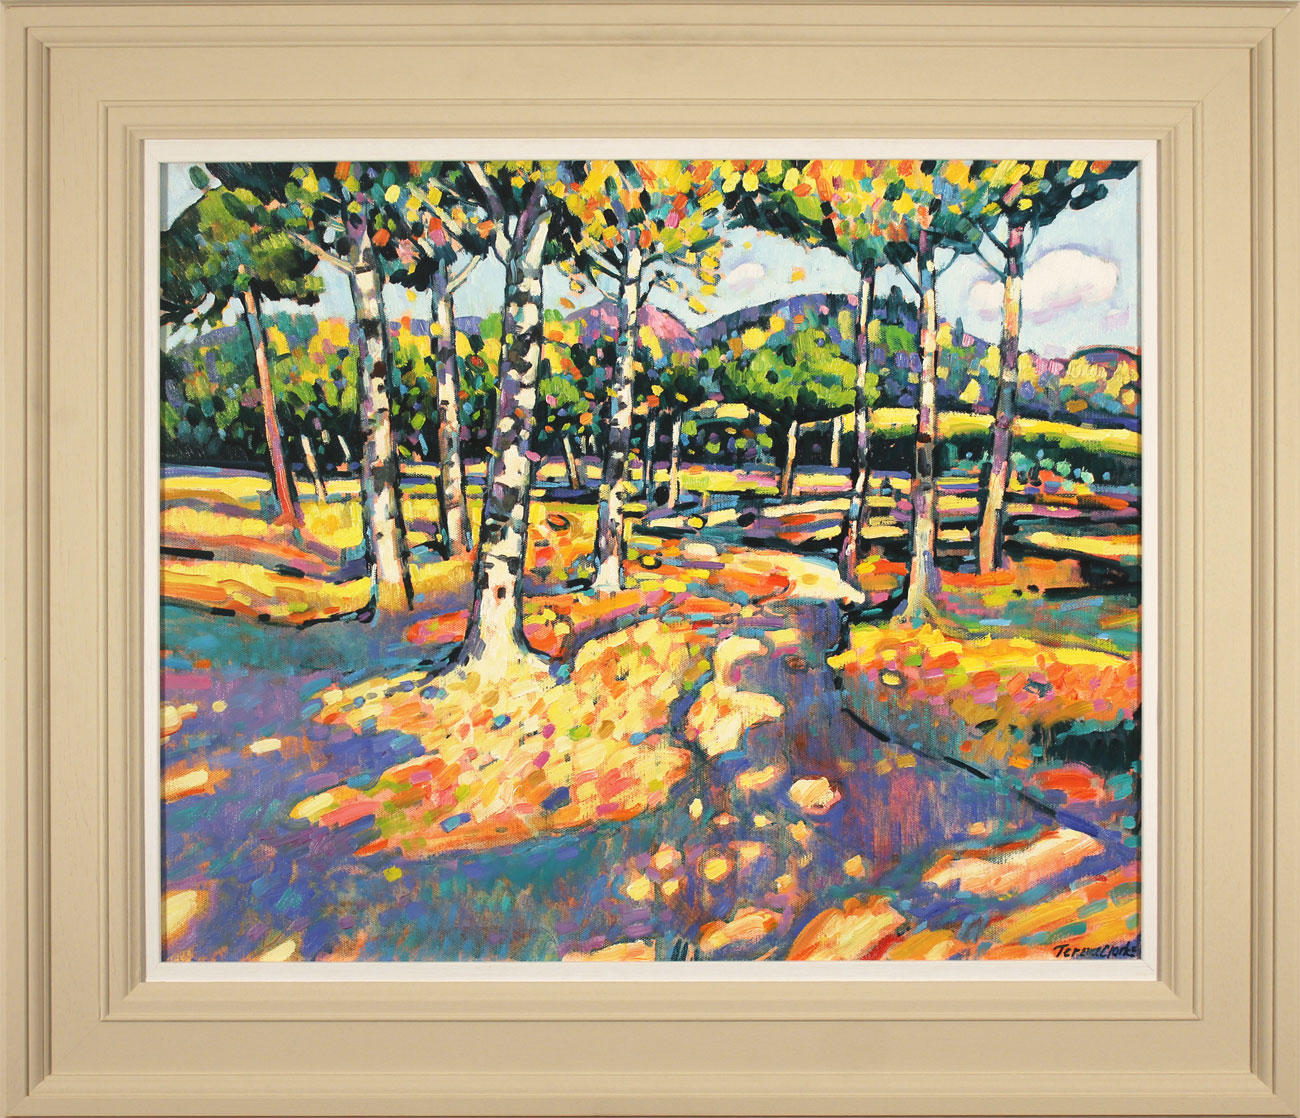 Terence Clarke, Original oil painting on canvas, Falling Leaves, Autumn. Click to enlarge